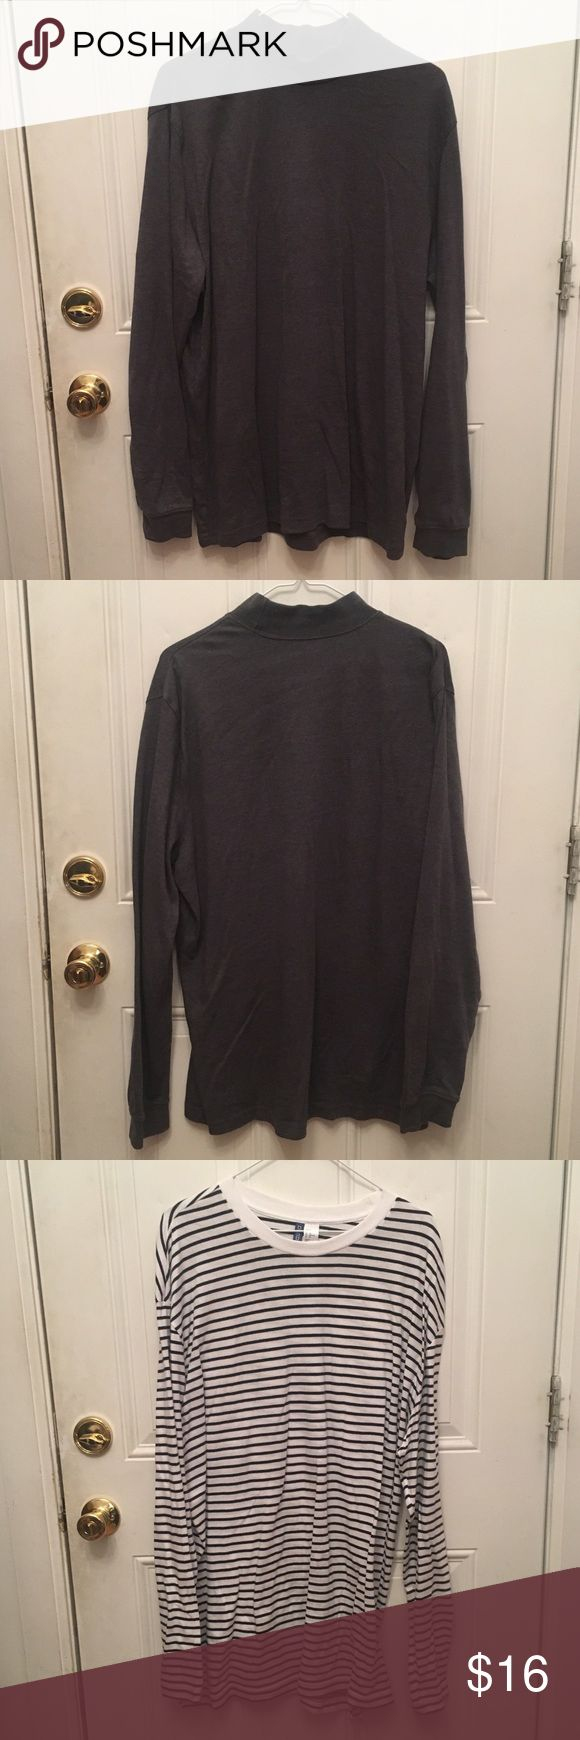 2 for 1 men's turtleneck and long sleeve tee Men's turtleneck and long sleeve striped shirt 2 for price of 1. Both worn once for a photoshoot other than that no visible markings or stains. Both are a size XL. H&M Shirts Tees - Long Sleeve